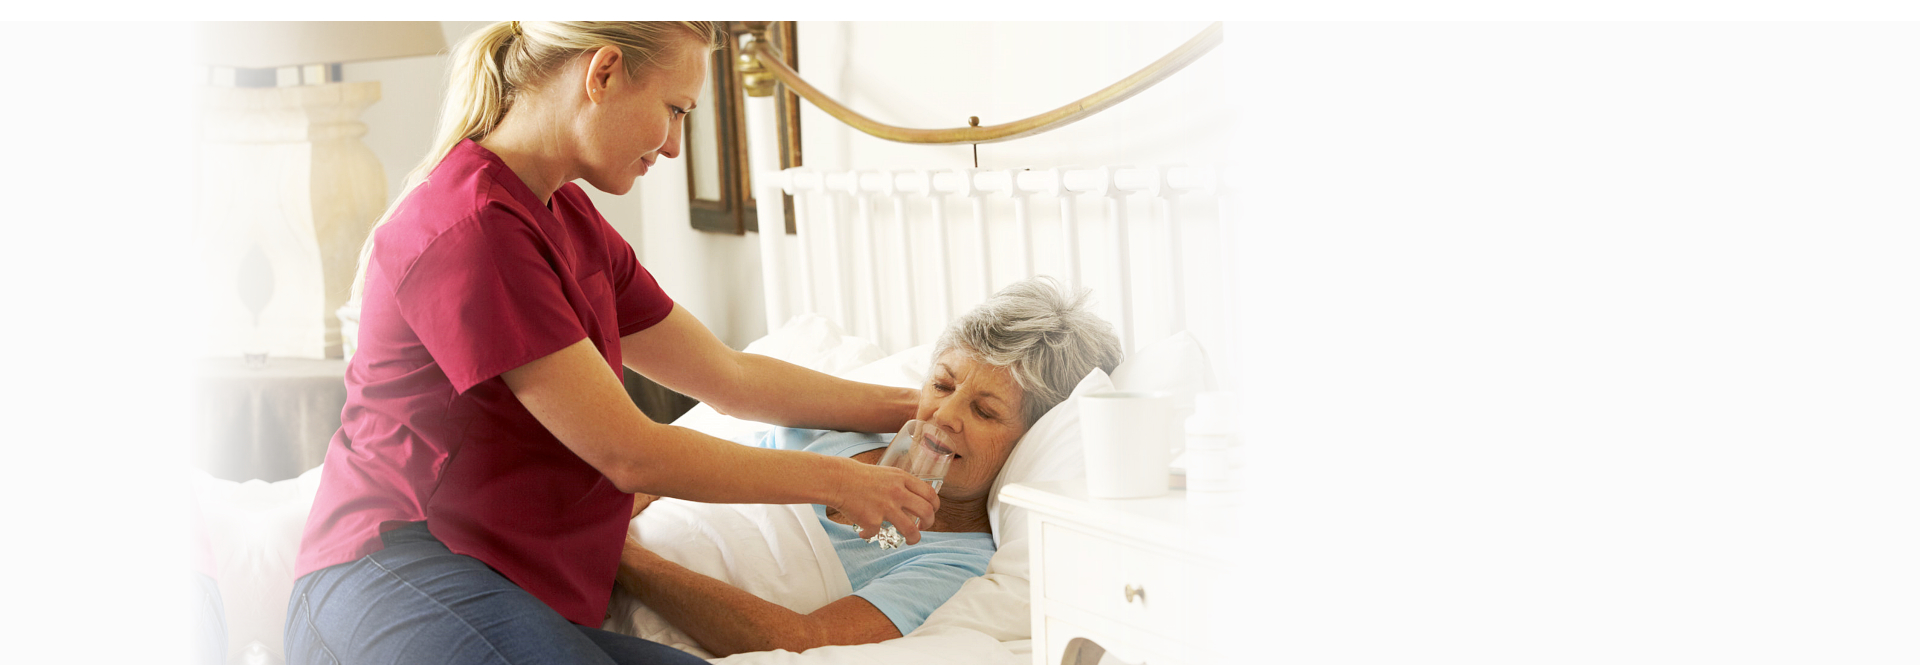 caregiver helping her patient in drinking